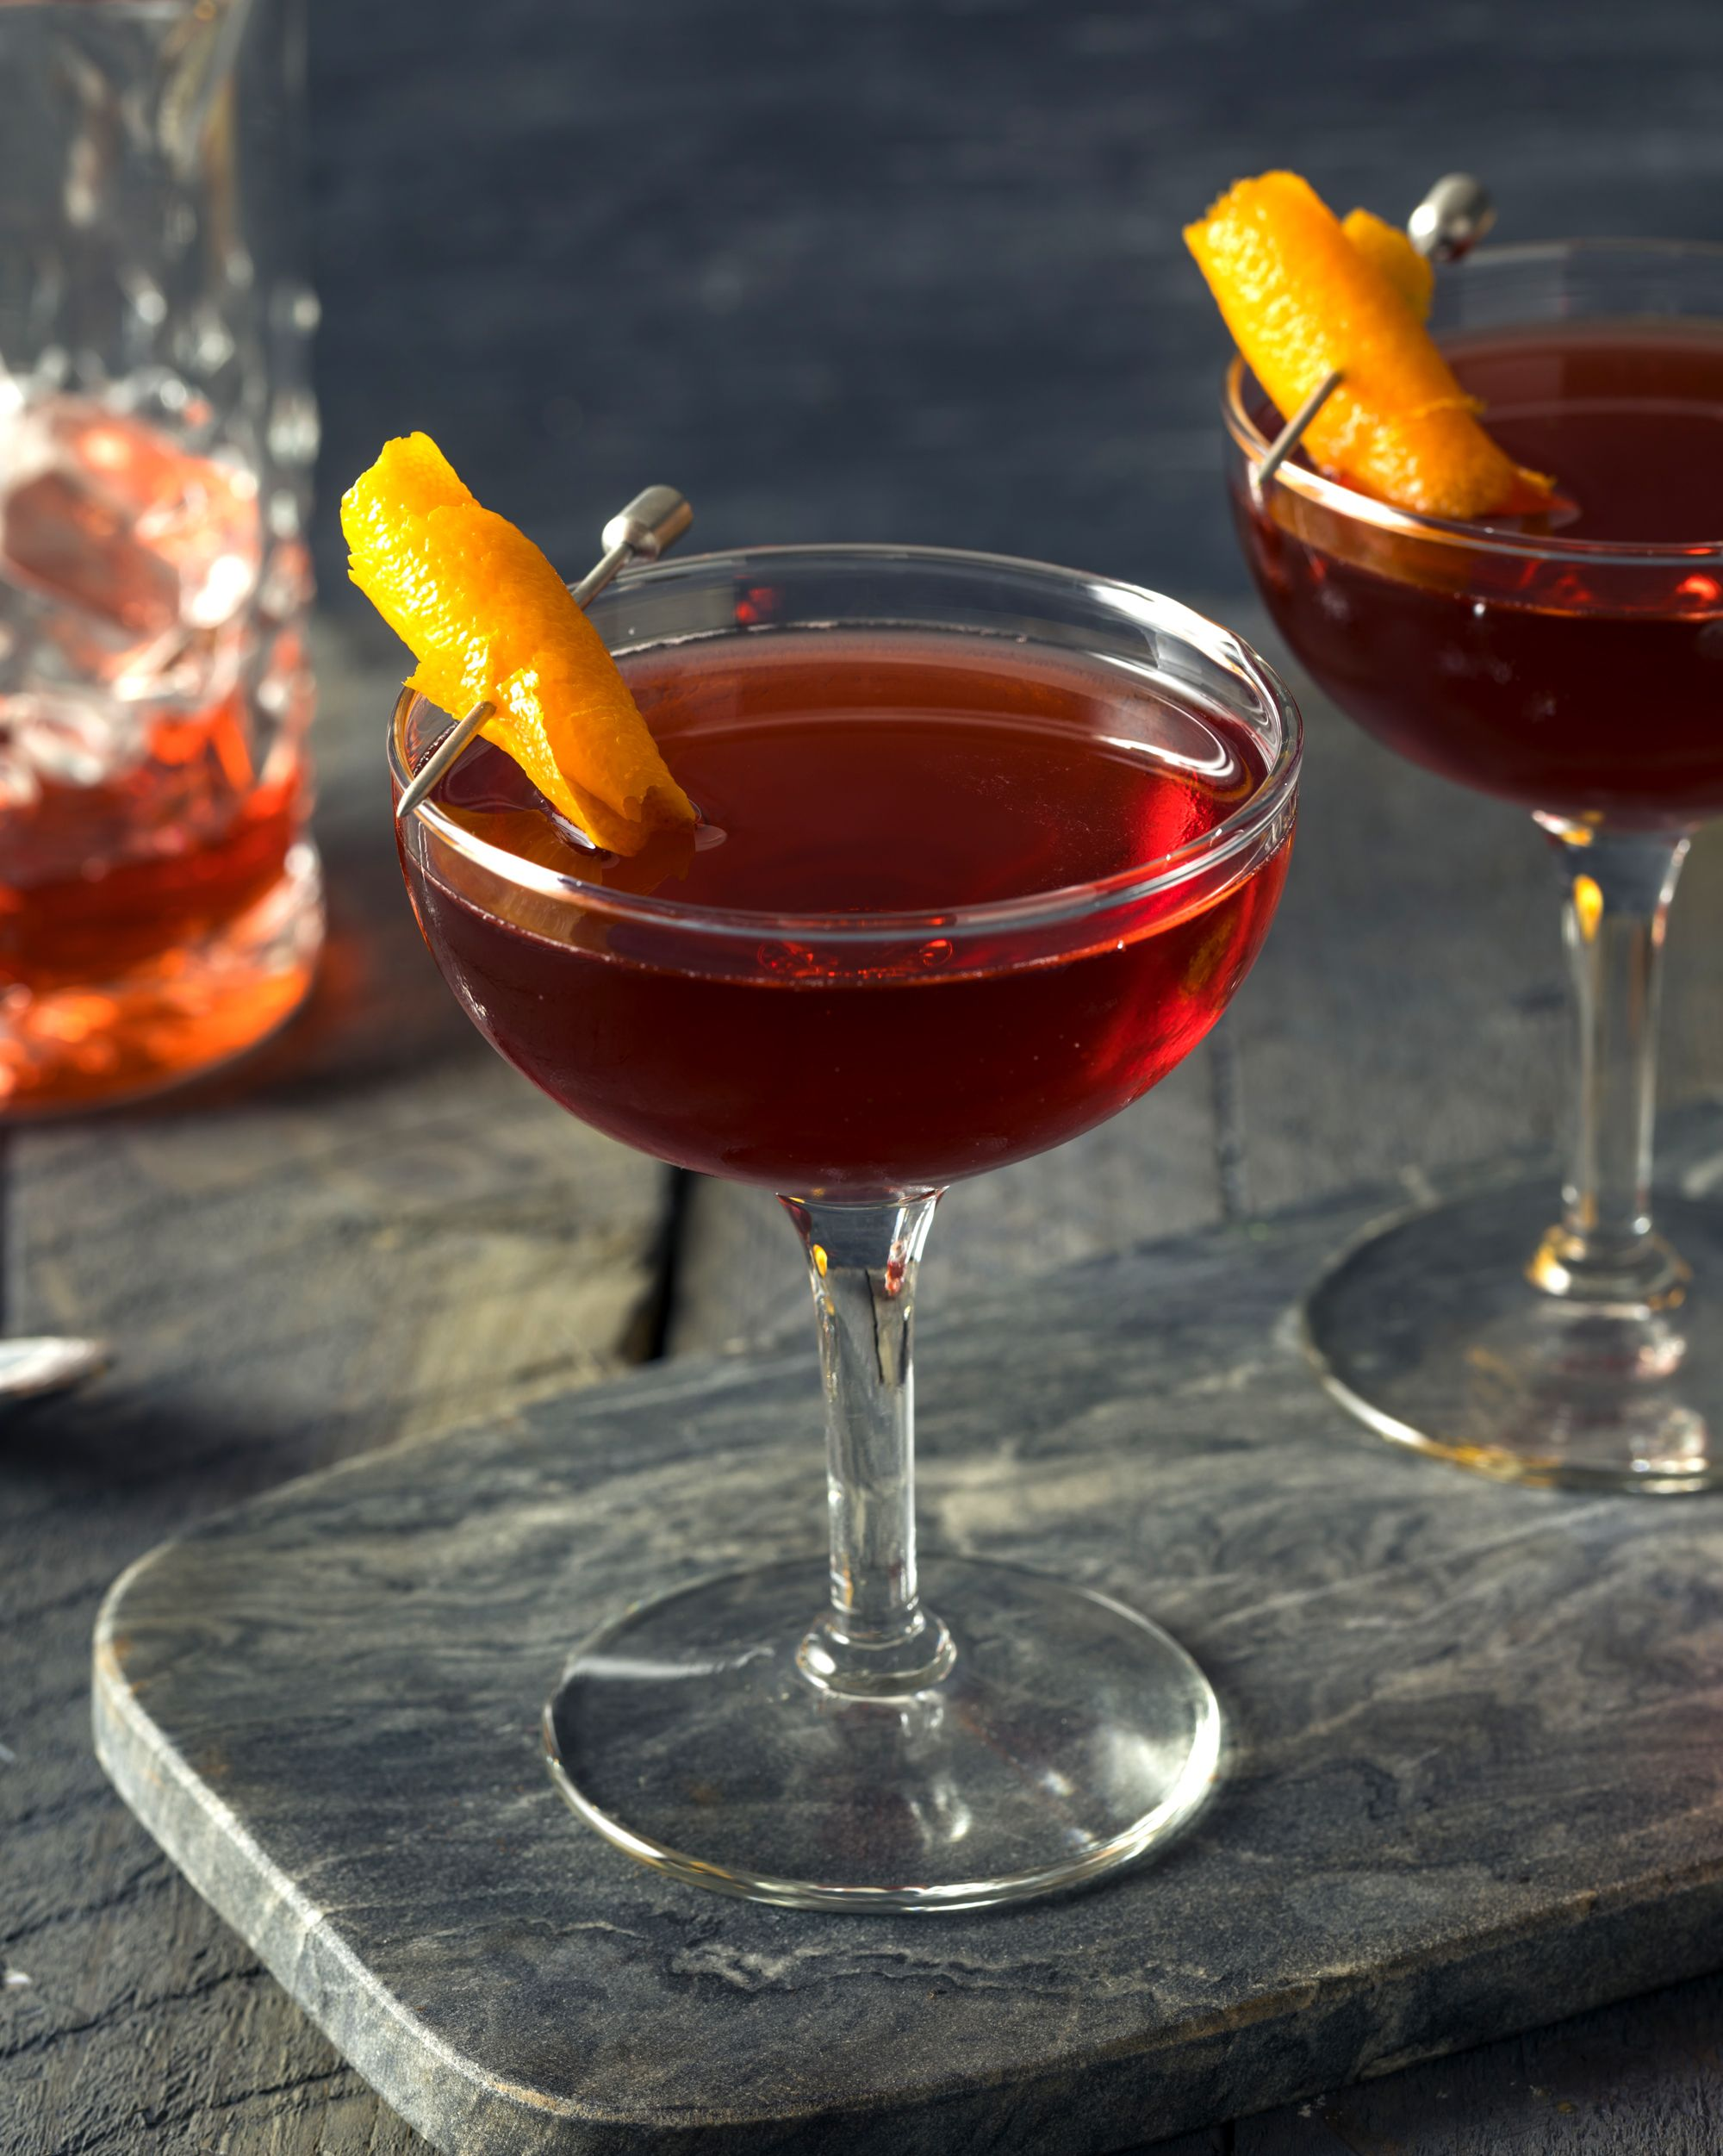 Homemade Red Boulevardier Cocktail